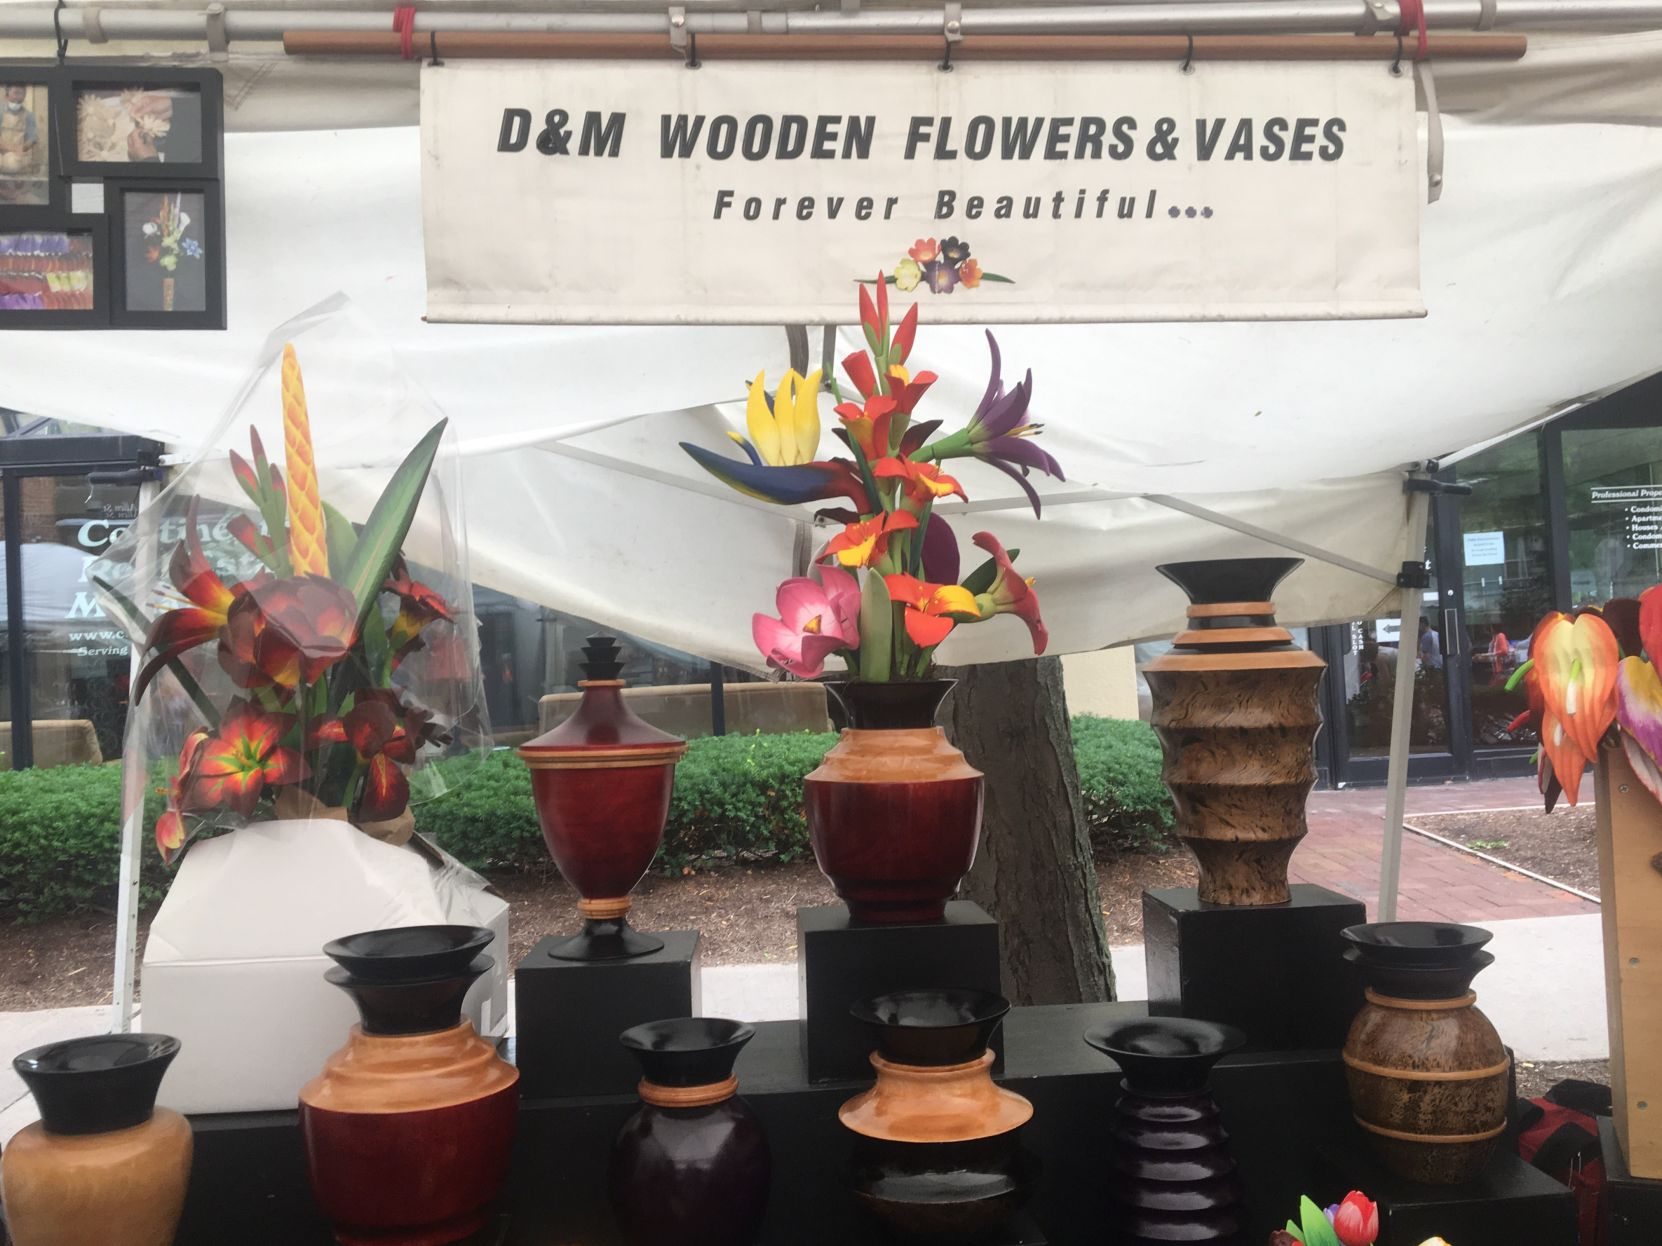 The Daily Collegian - Penn State & DM Wooden Flowers and Vases display long-lasting beauty at Arts Fest ...